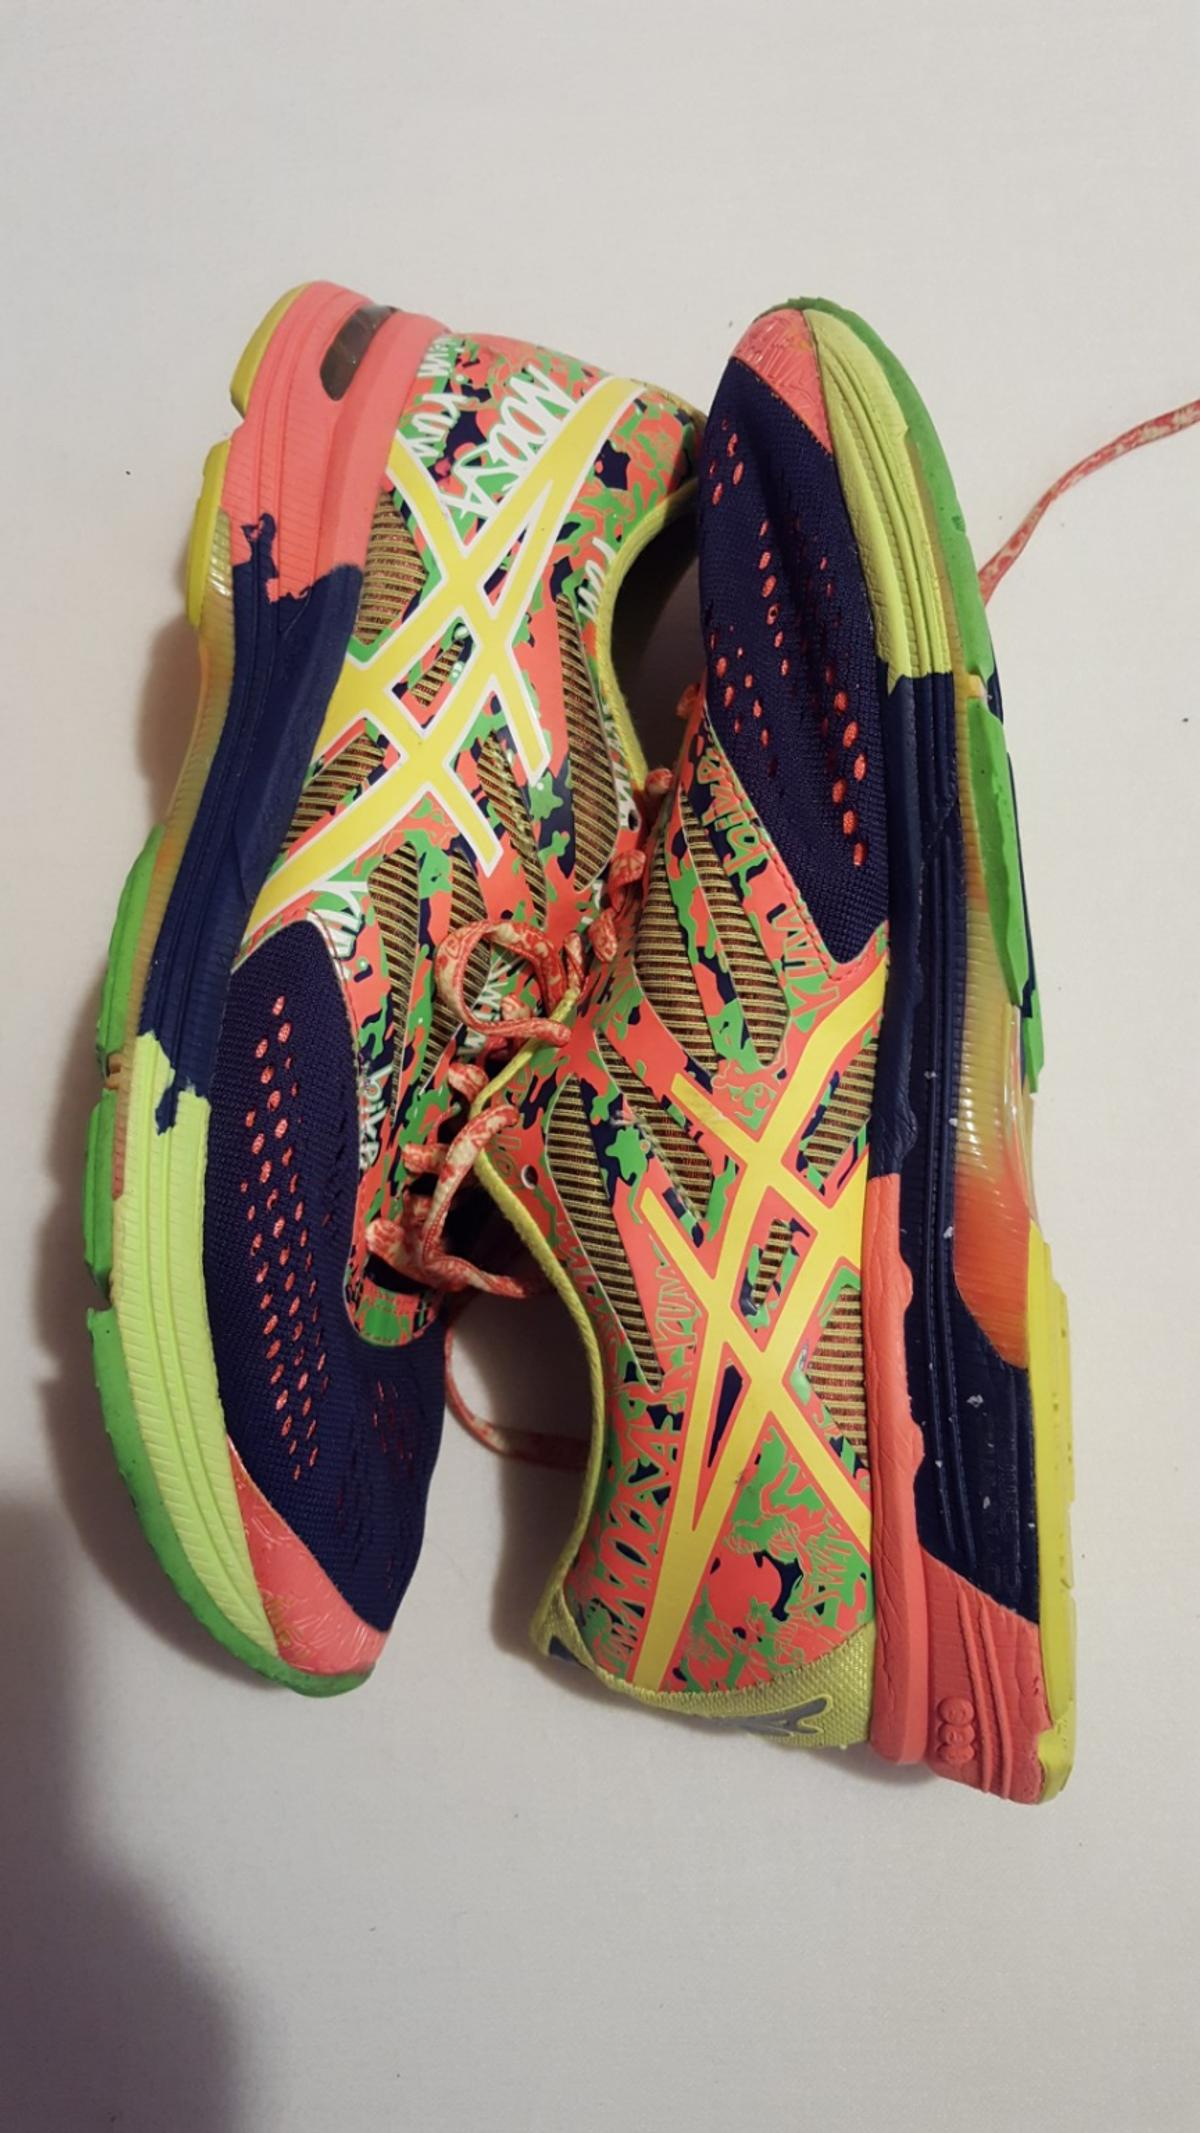 Asics Gel Noosa Tri 10 Size UK 7 in CW1 Crewe for £25.00 for